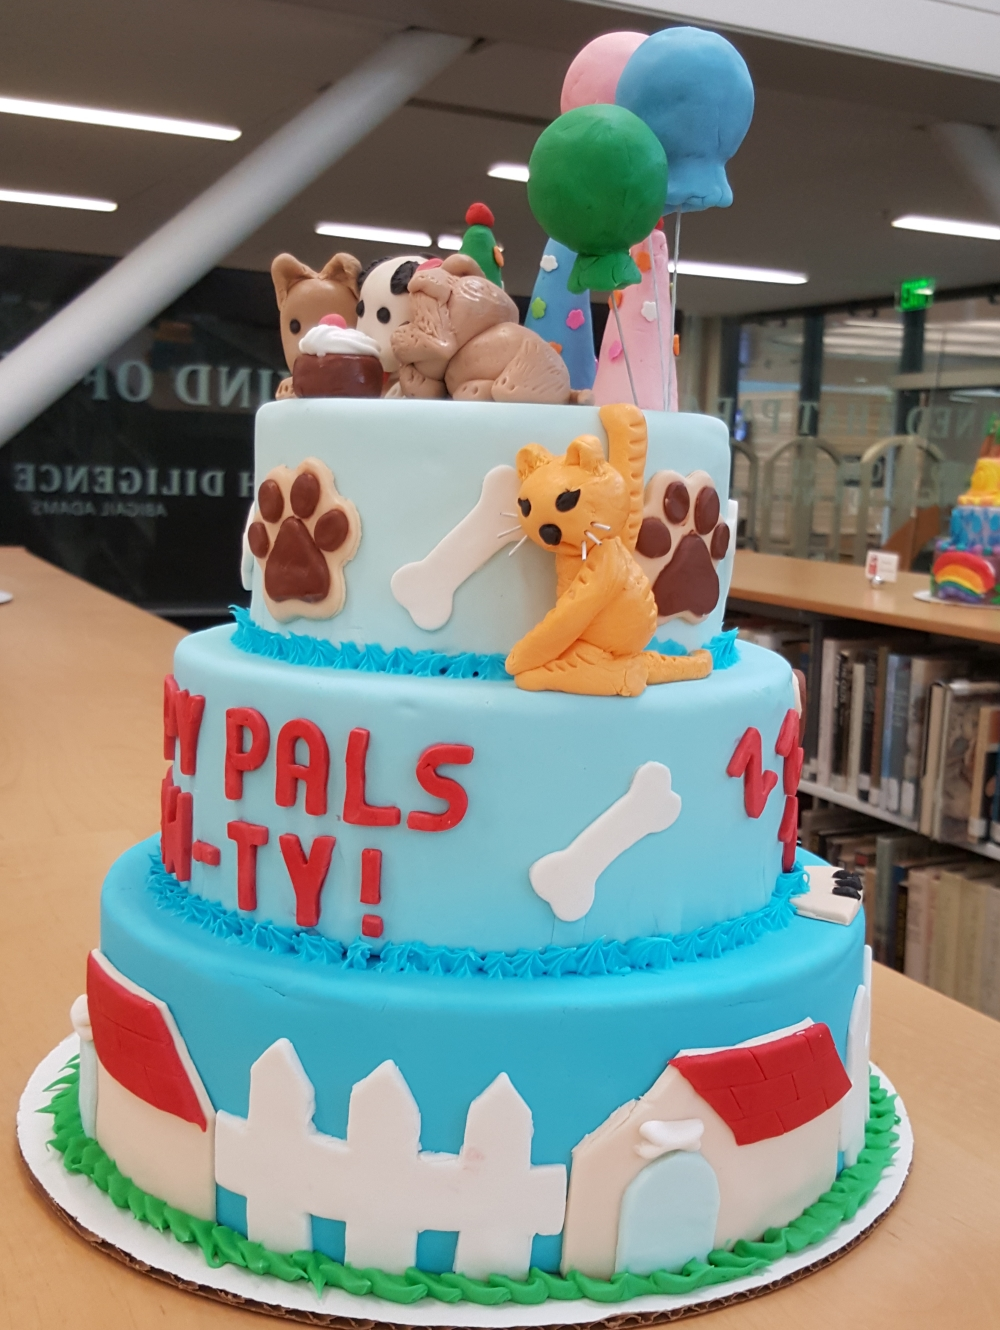 2019 Cakes Puppy Pals Pawty - right view